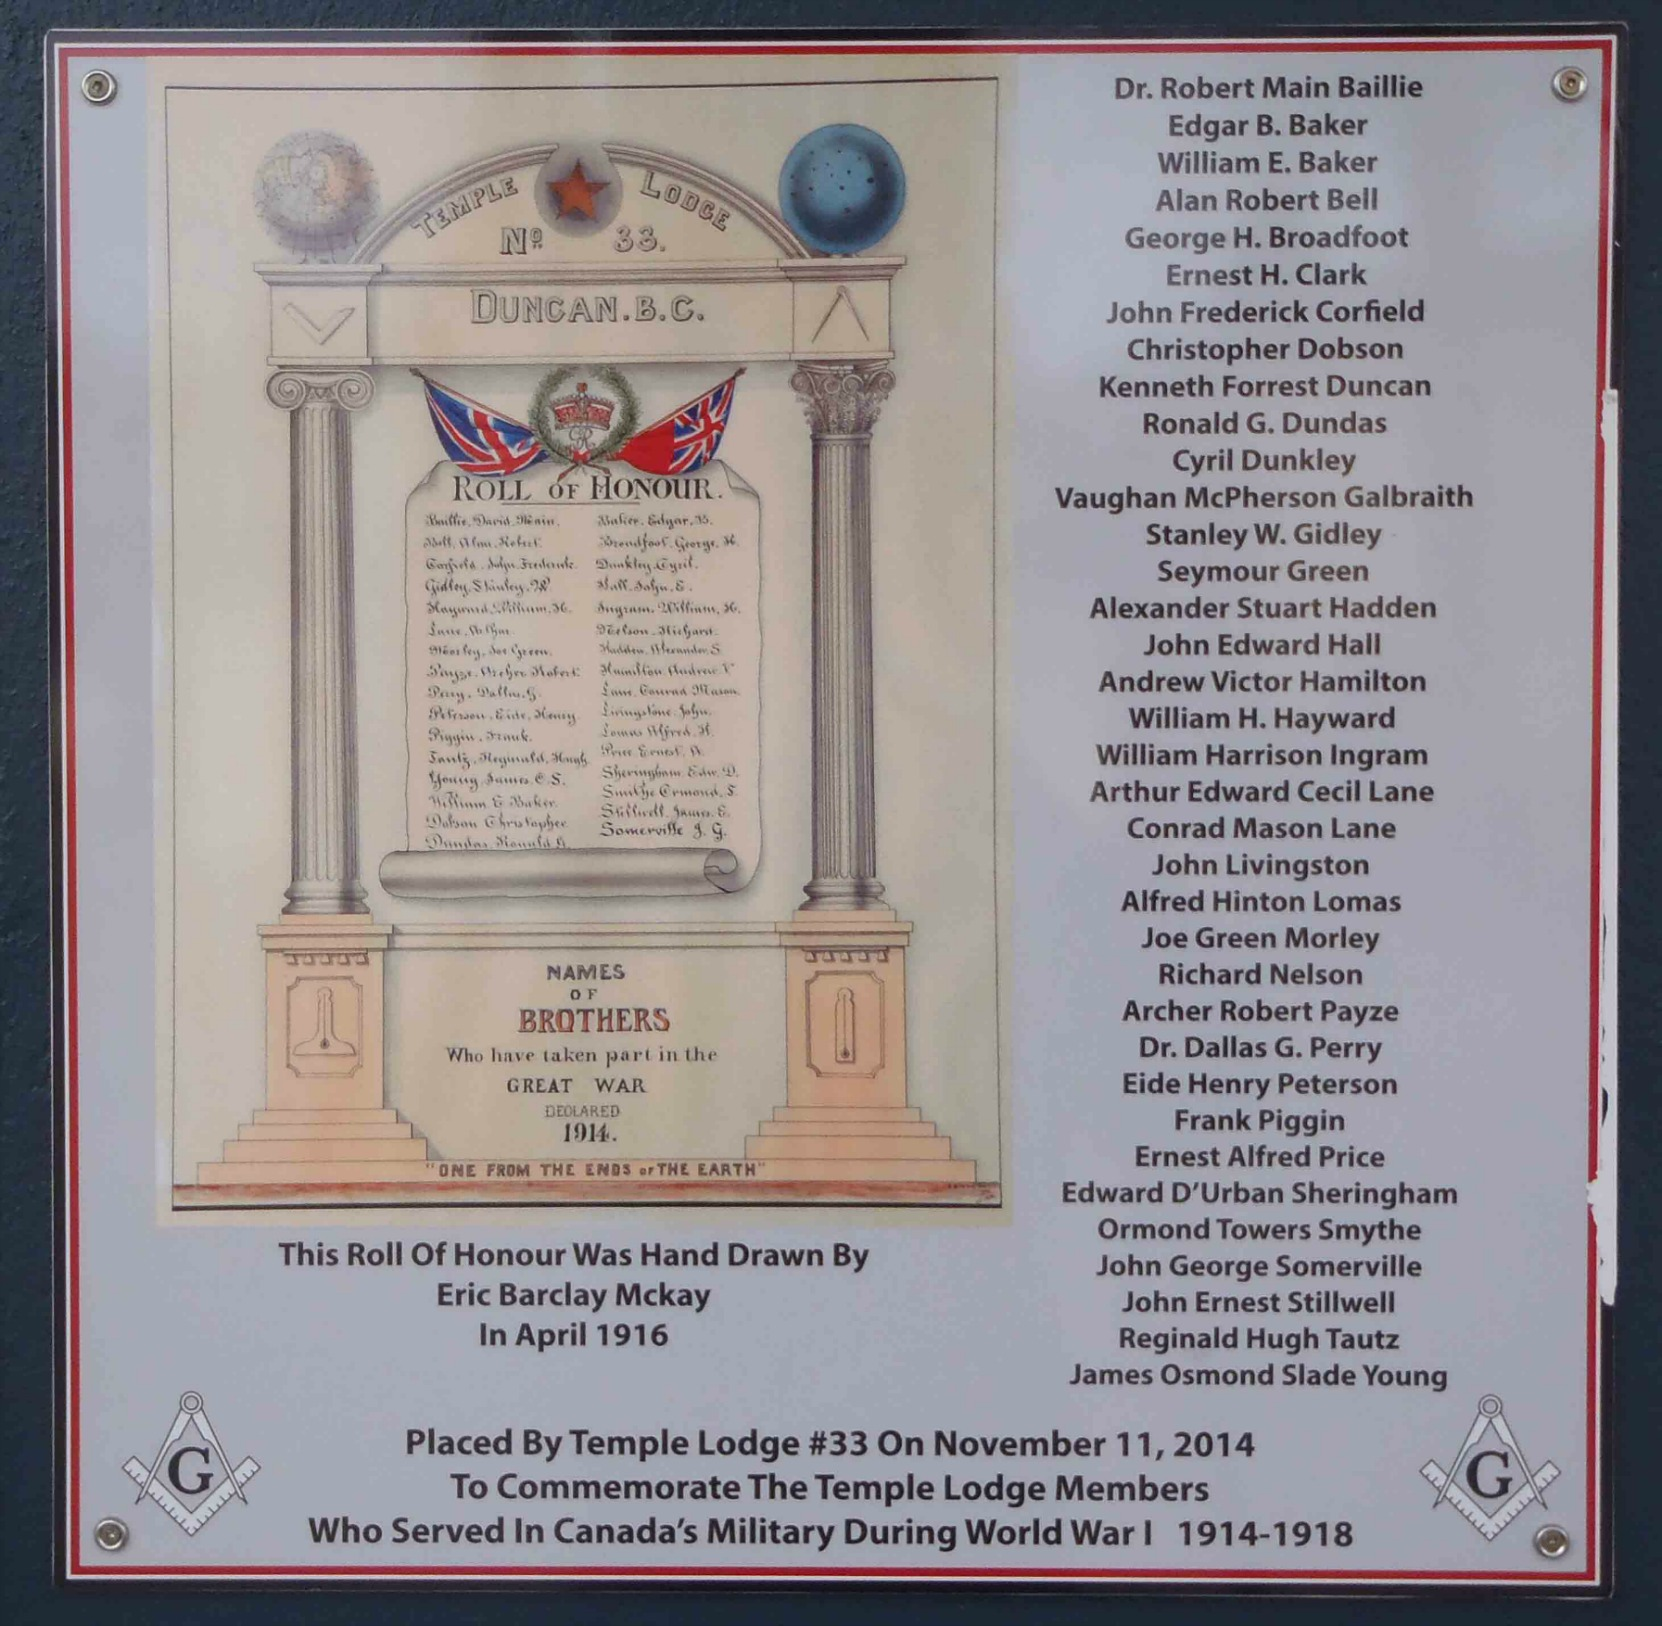 World War 1 Memorial Plaque at entrance to Duncan Masonic Temple, 163 Canada Avenue